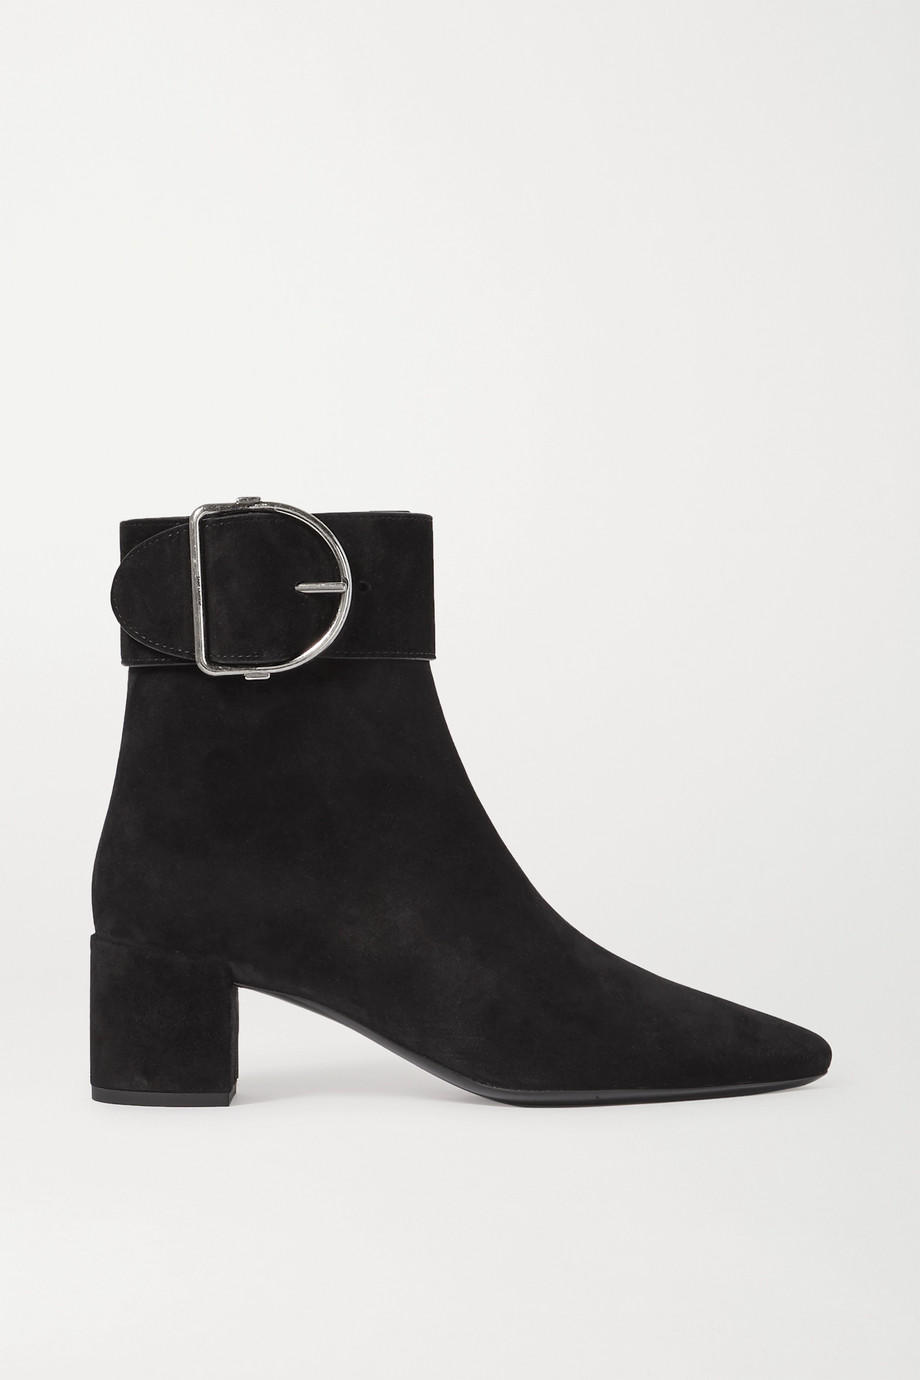 SAINT LAURENT Charlie buckled suede ankle boots